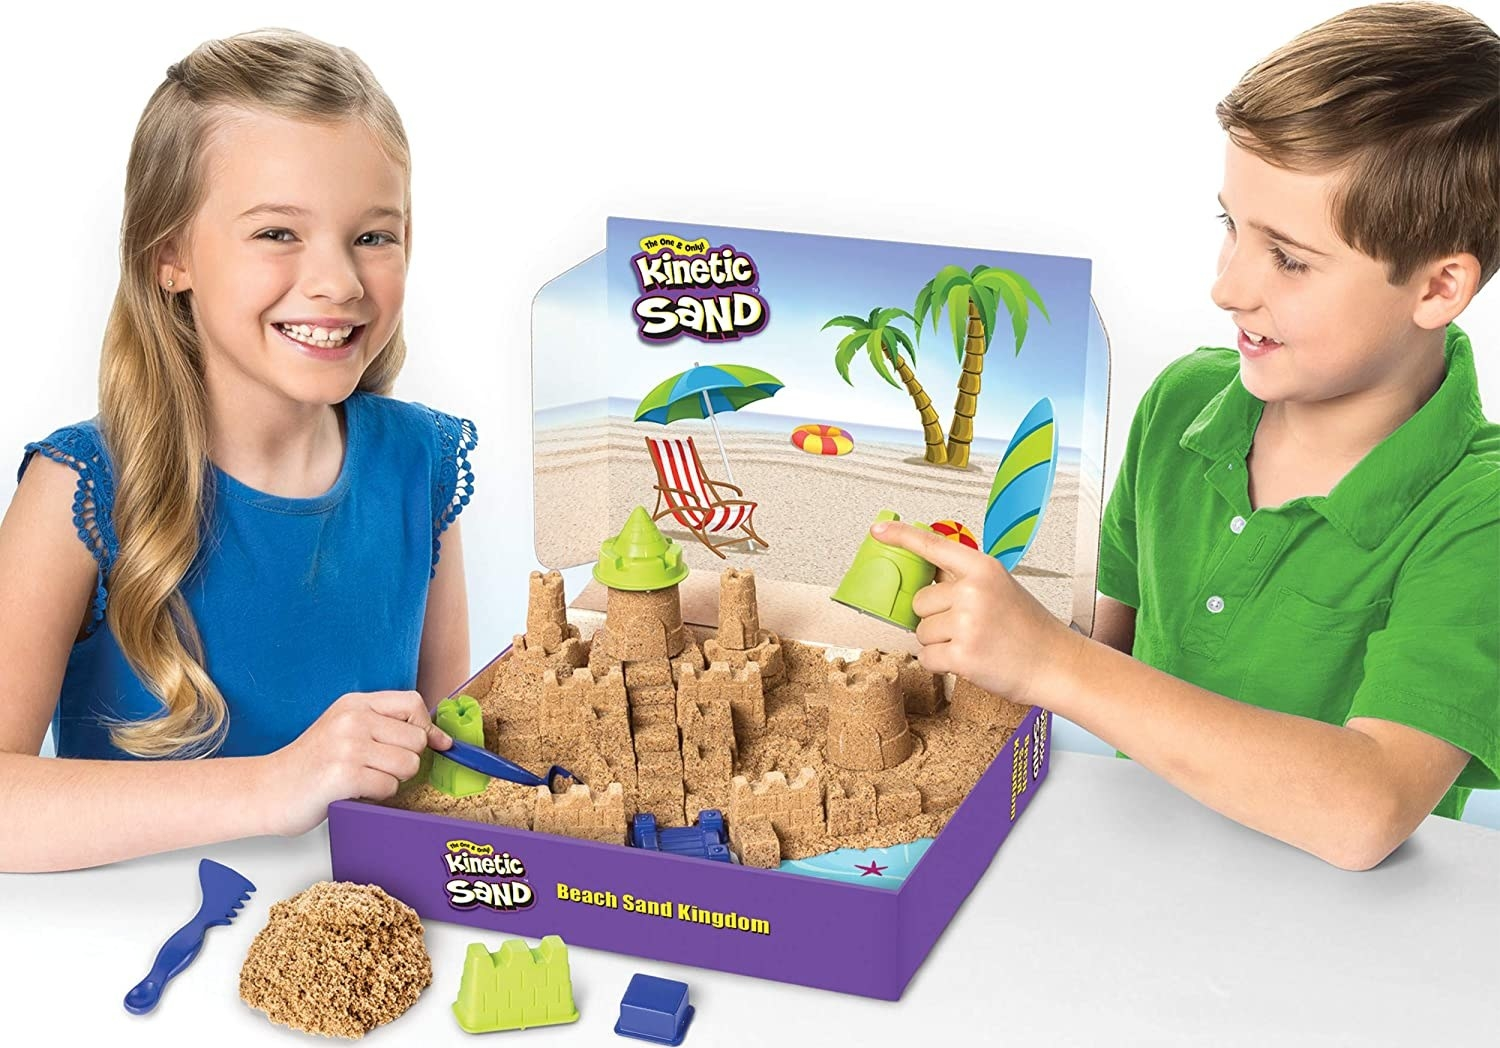 Two kids make a sandcastle with Kinetic Sand